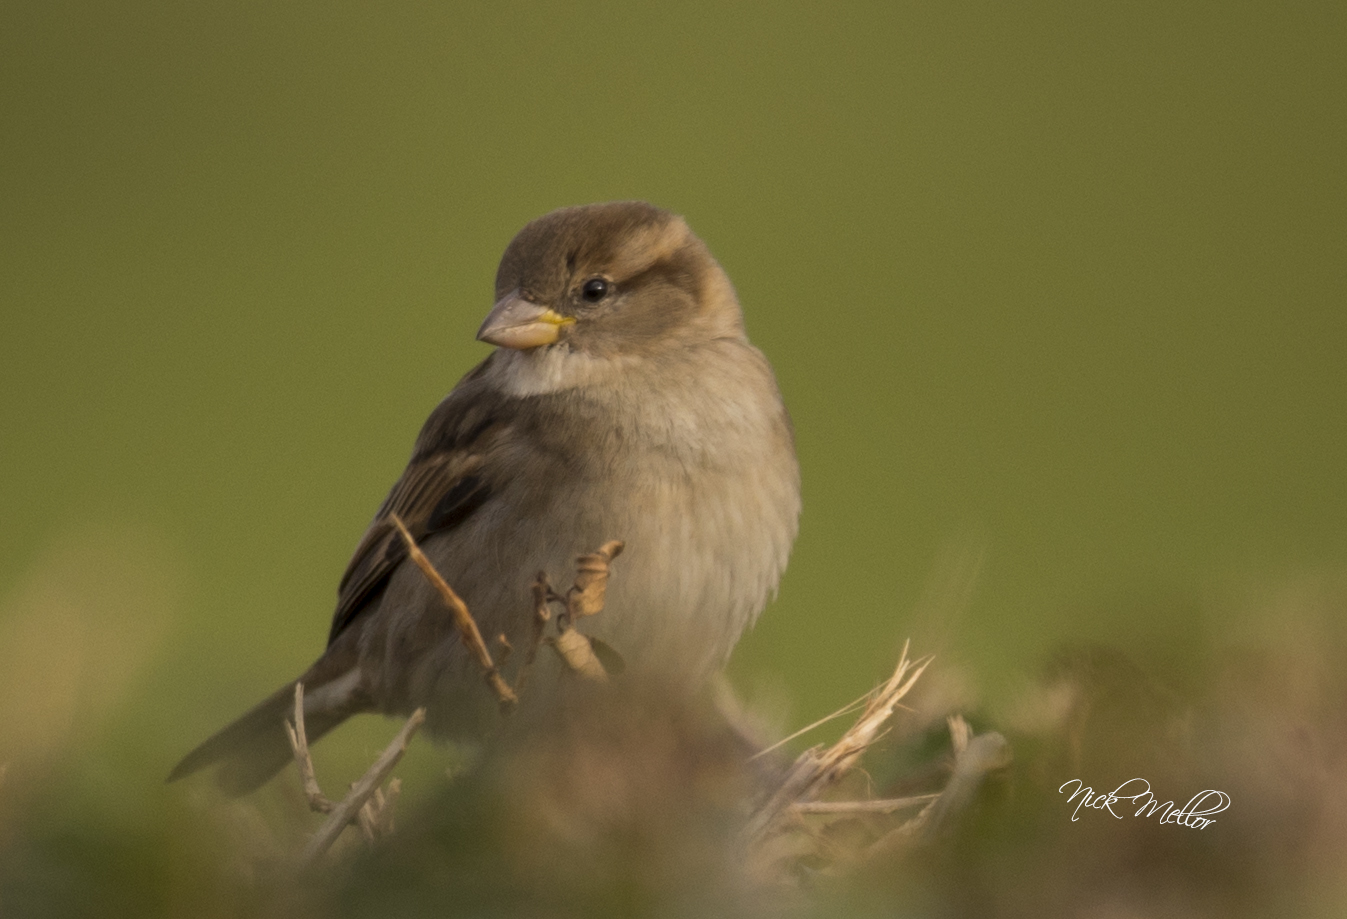 Female Hedge Sparrow